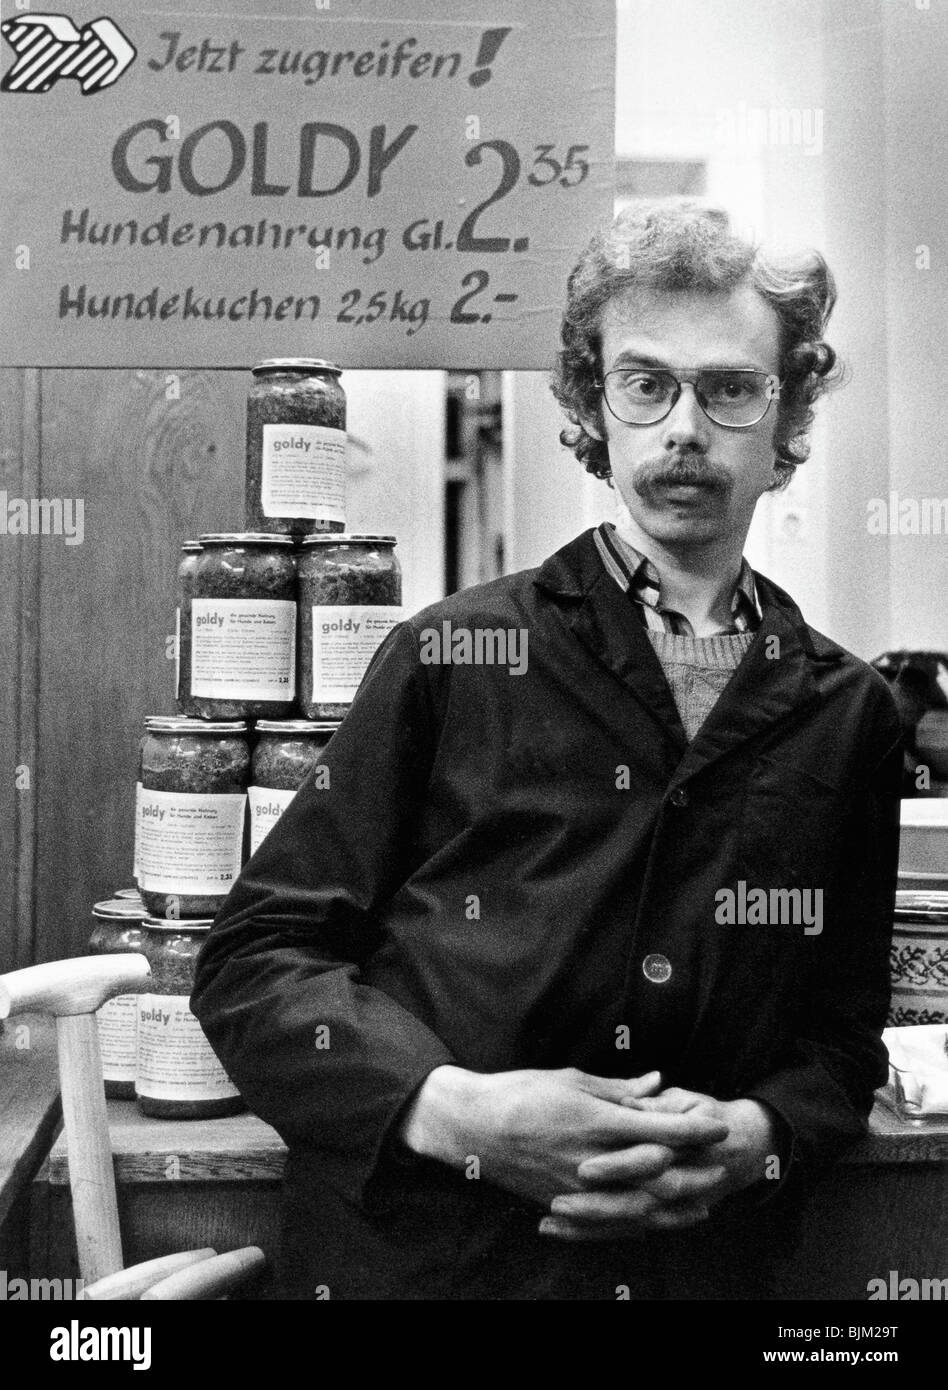 Shopkeeper and advertisement for dog food, East Germany, Europe, circa 1975 - Stock Image